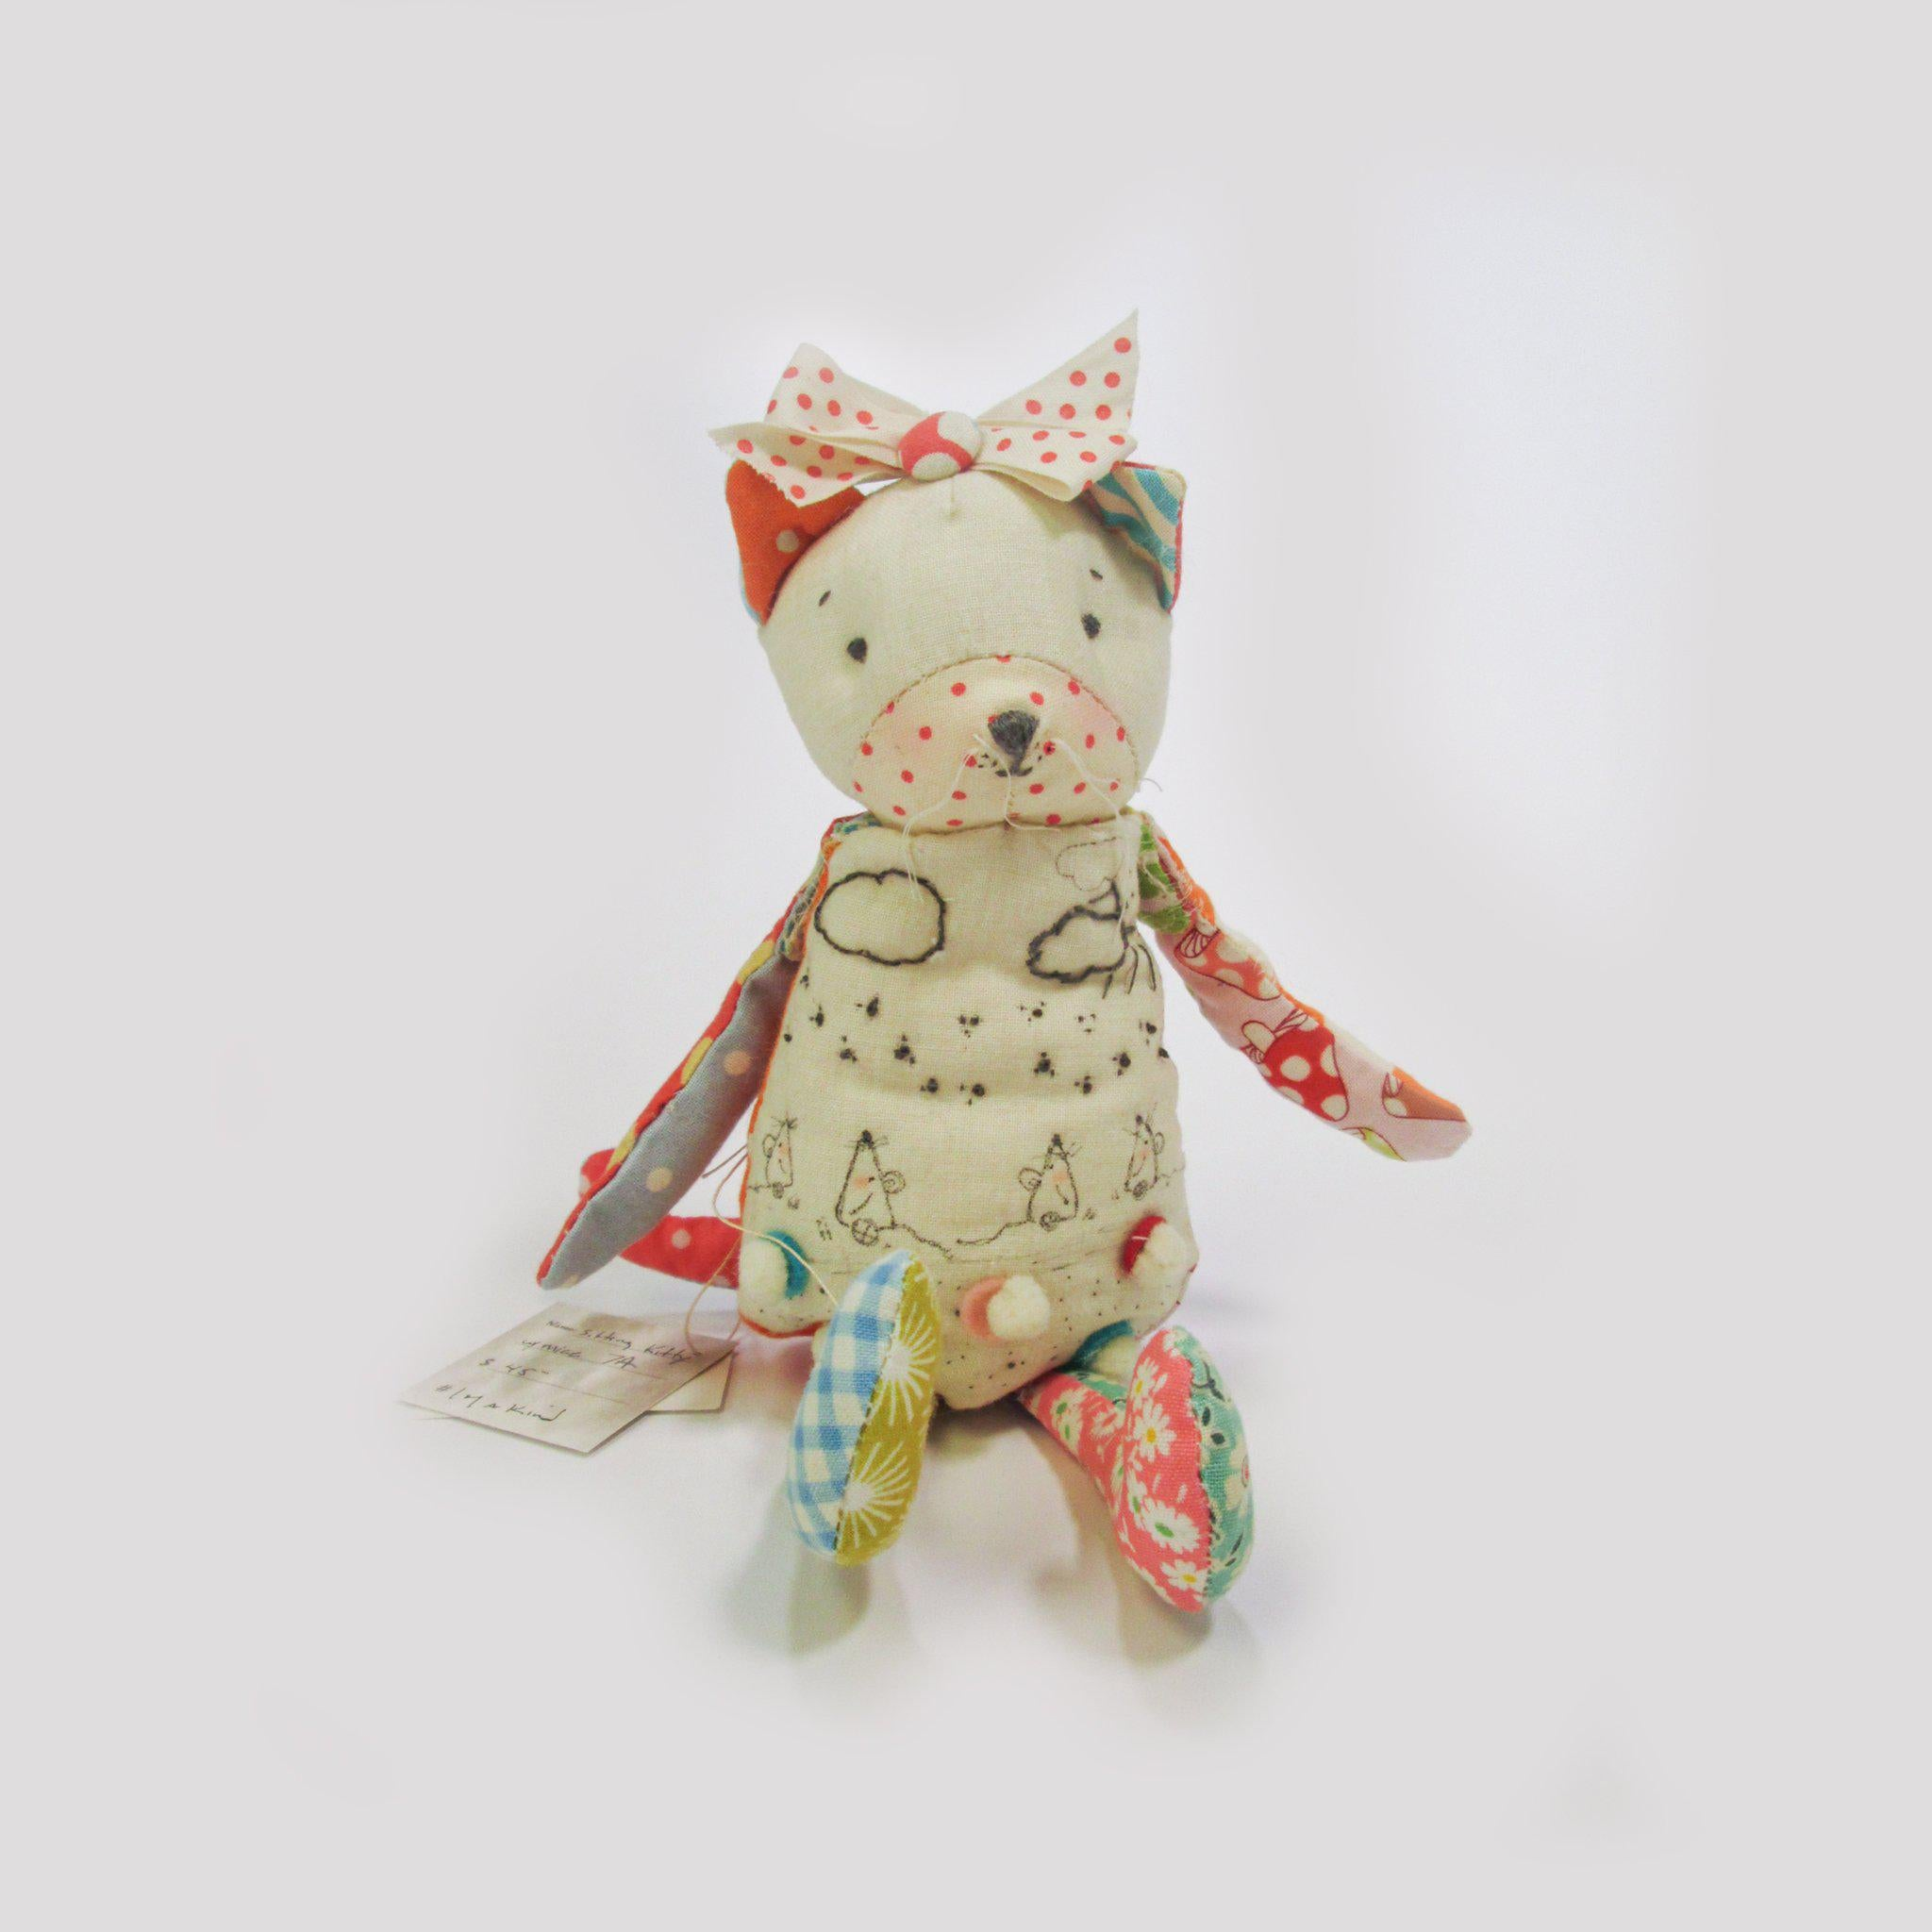 Hutch Studio - Kitty with Mice - One Of A Kind Kitty